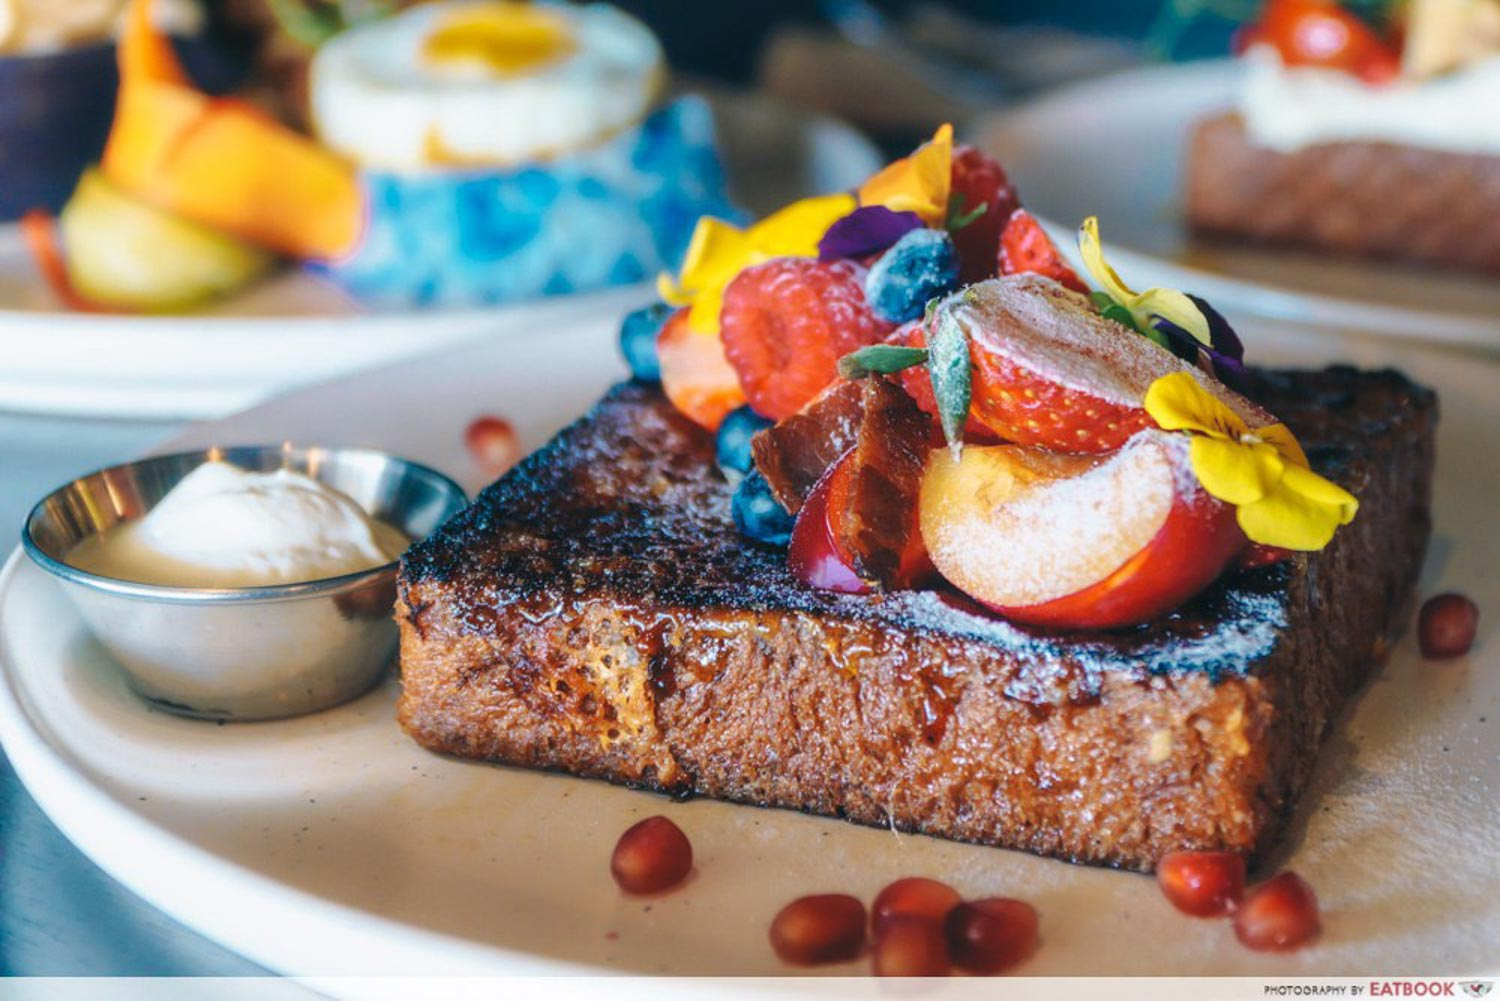 Bukit Timah Cafes - Brulee French Toast